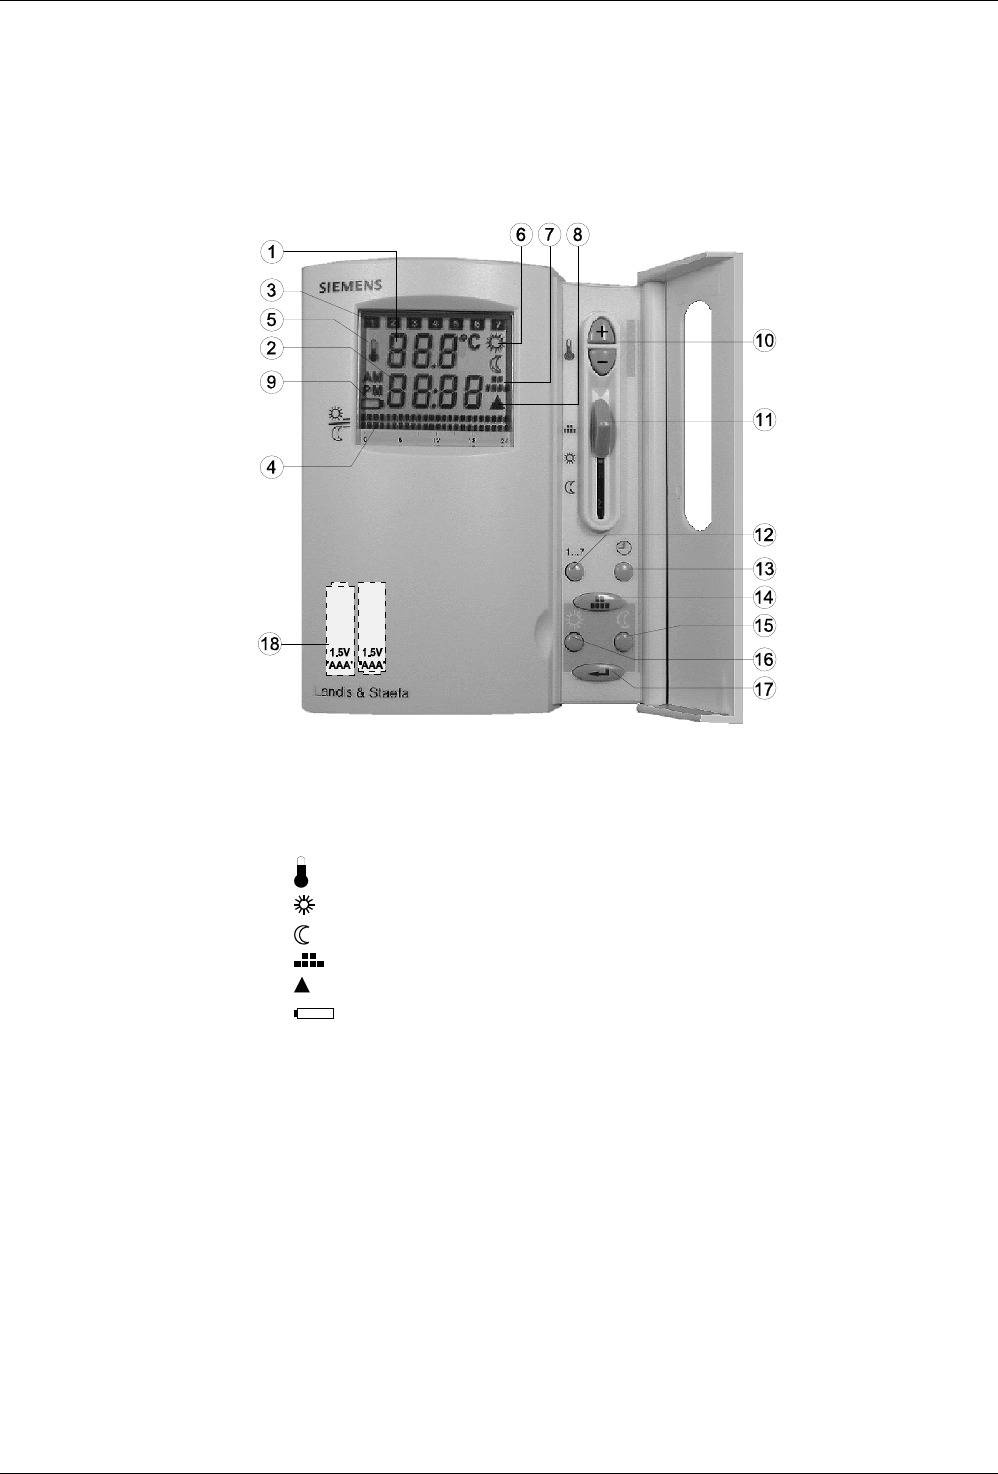 Siemens rde10-1 central heating preview manual for free | page: 8.